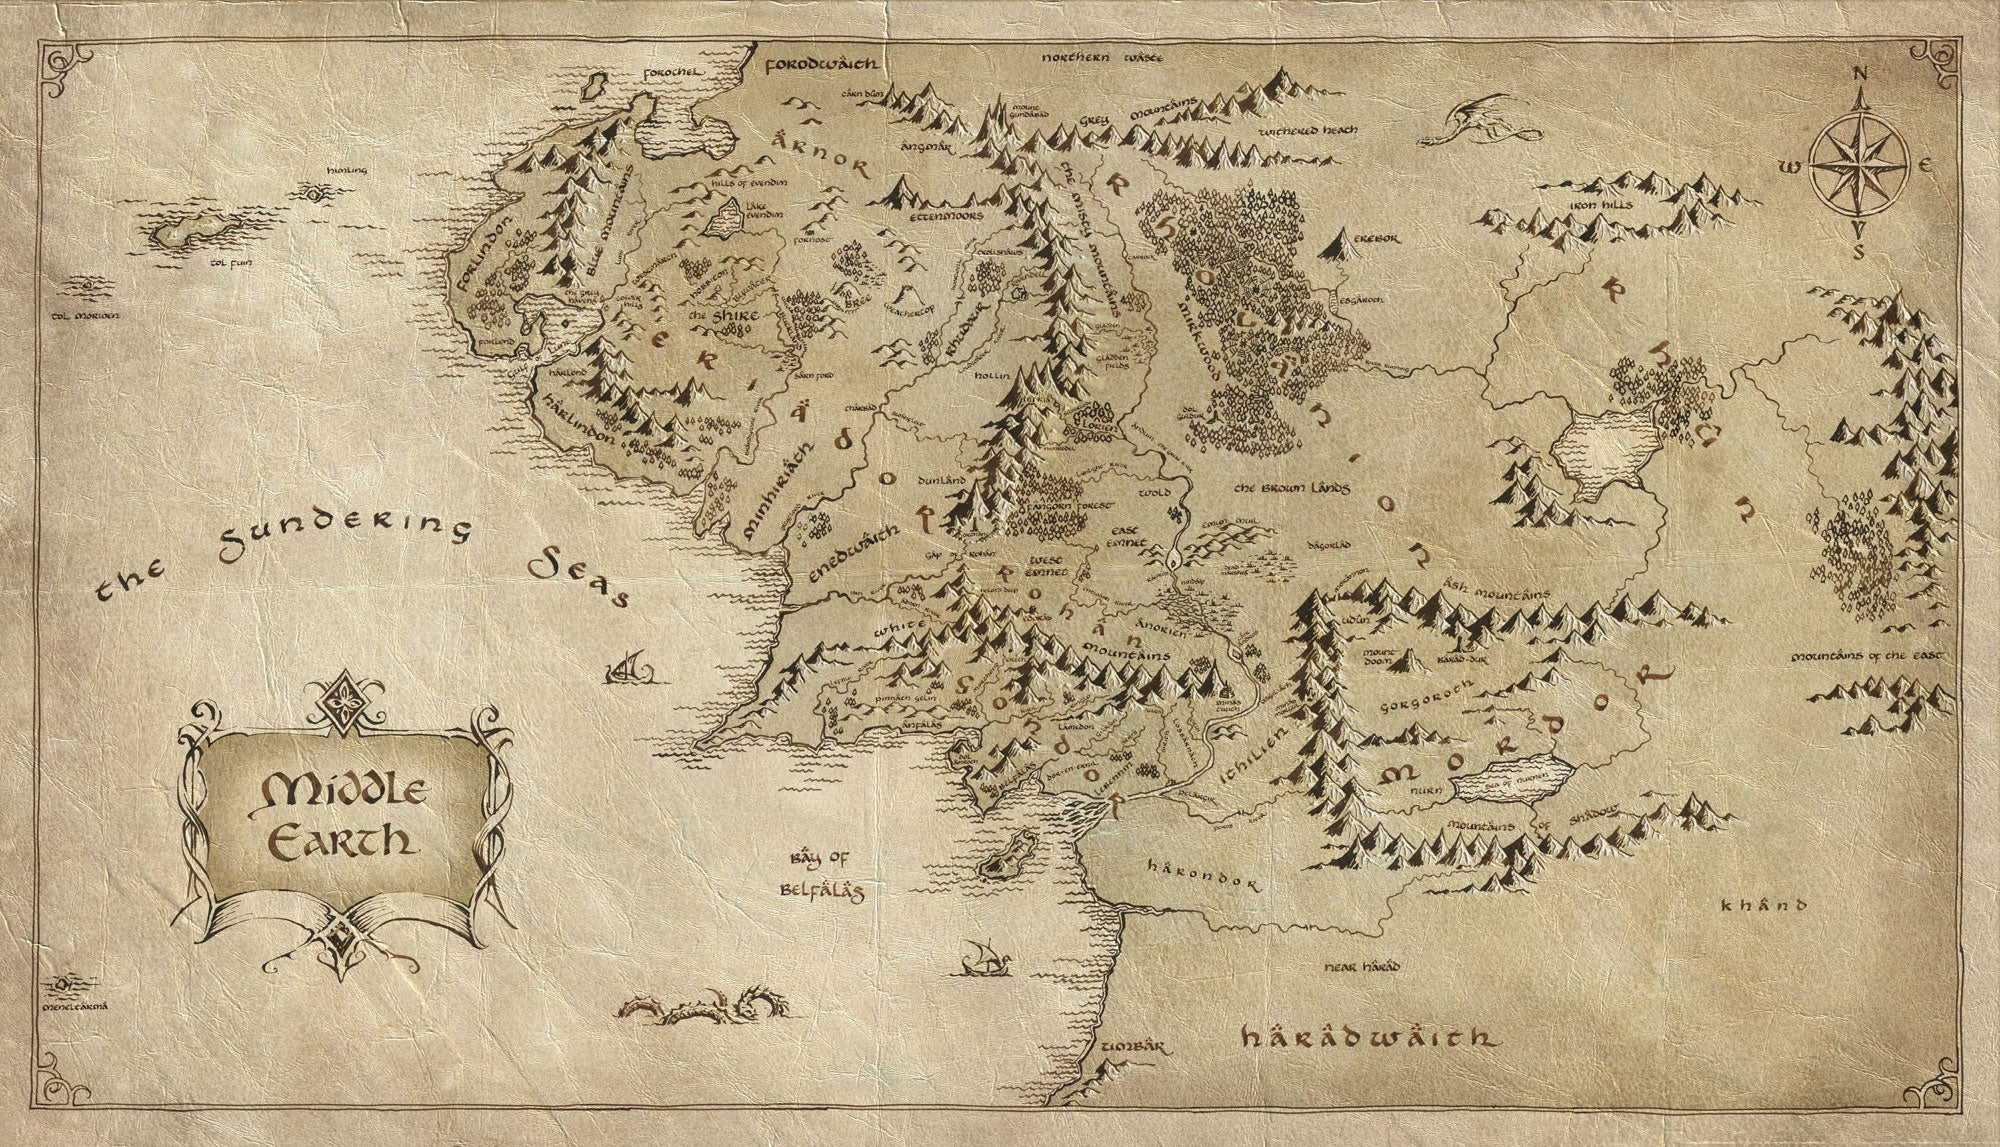 The Beautiful Handwriting And Maps Of The Lord Of The Rings Movies – Lord of the Rings Map Middle Earth